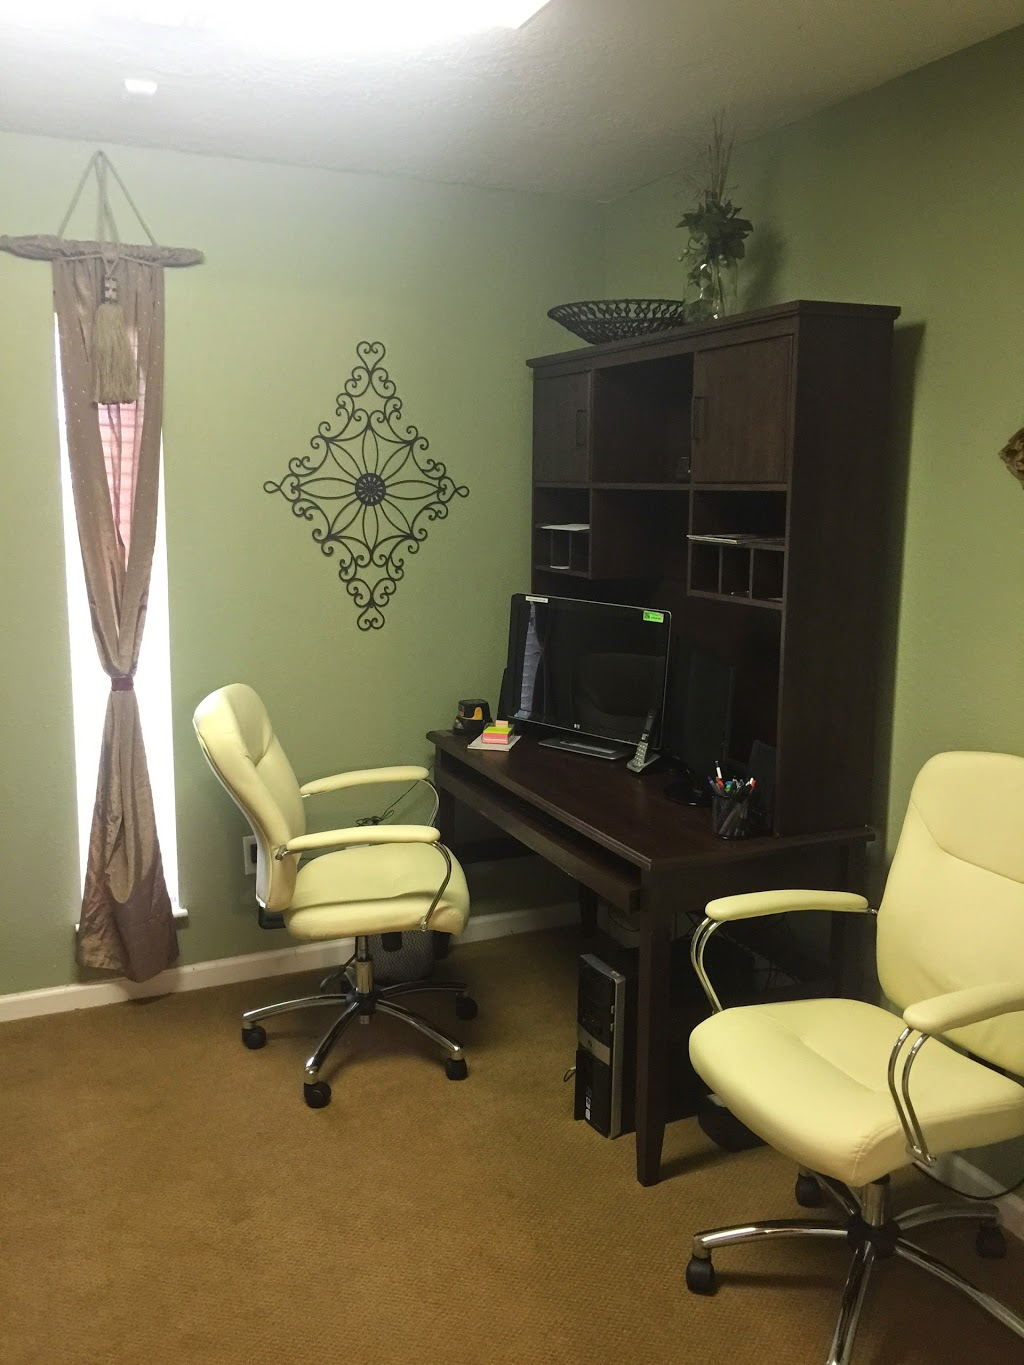 Galveston County Property Management and Sales - real estate agency    Photo 10 of 10   Address: 1501 6th St N, Texas City, TX 77590, USA   Phone: (888) 645-9994